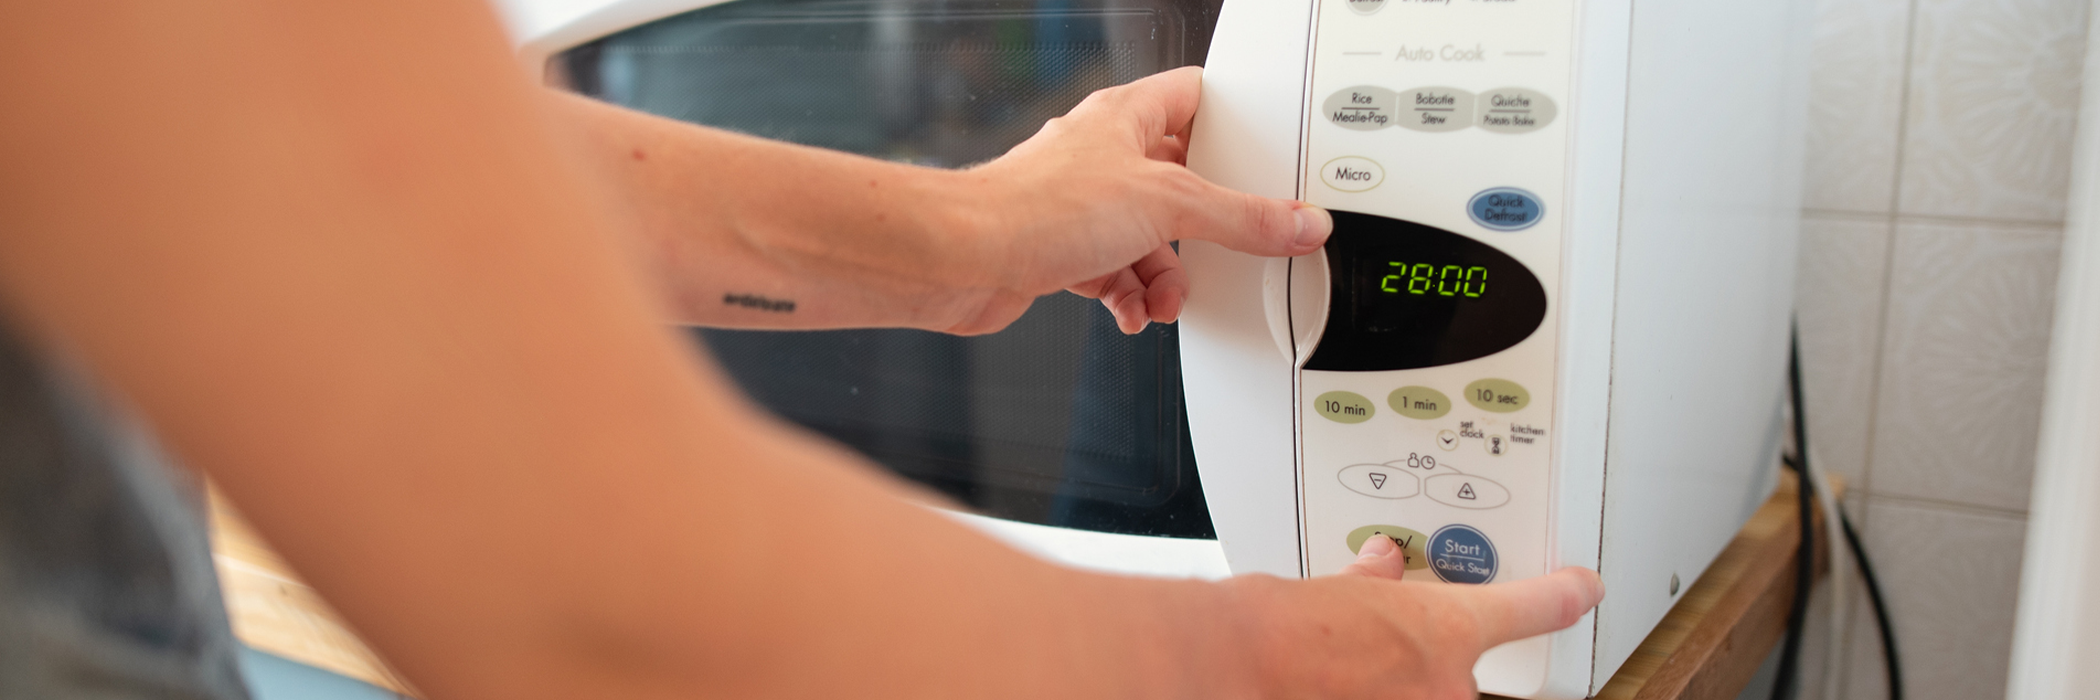 Close-up of a woman warming up food in a microwave while standing at a counter in her kitchen at home.